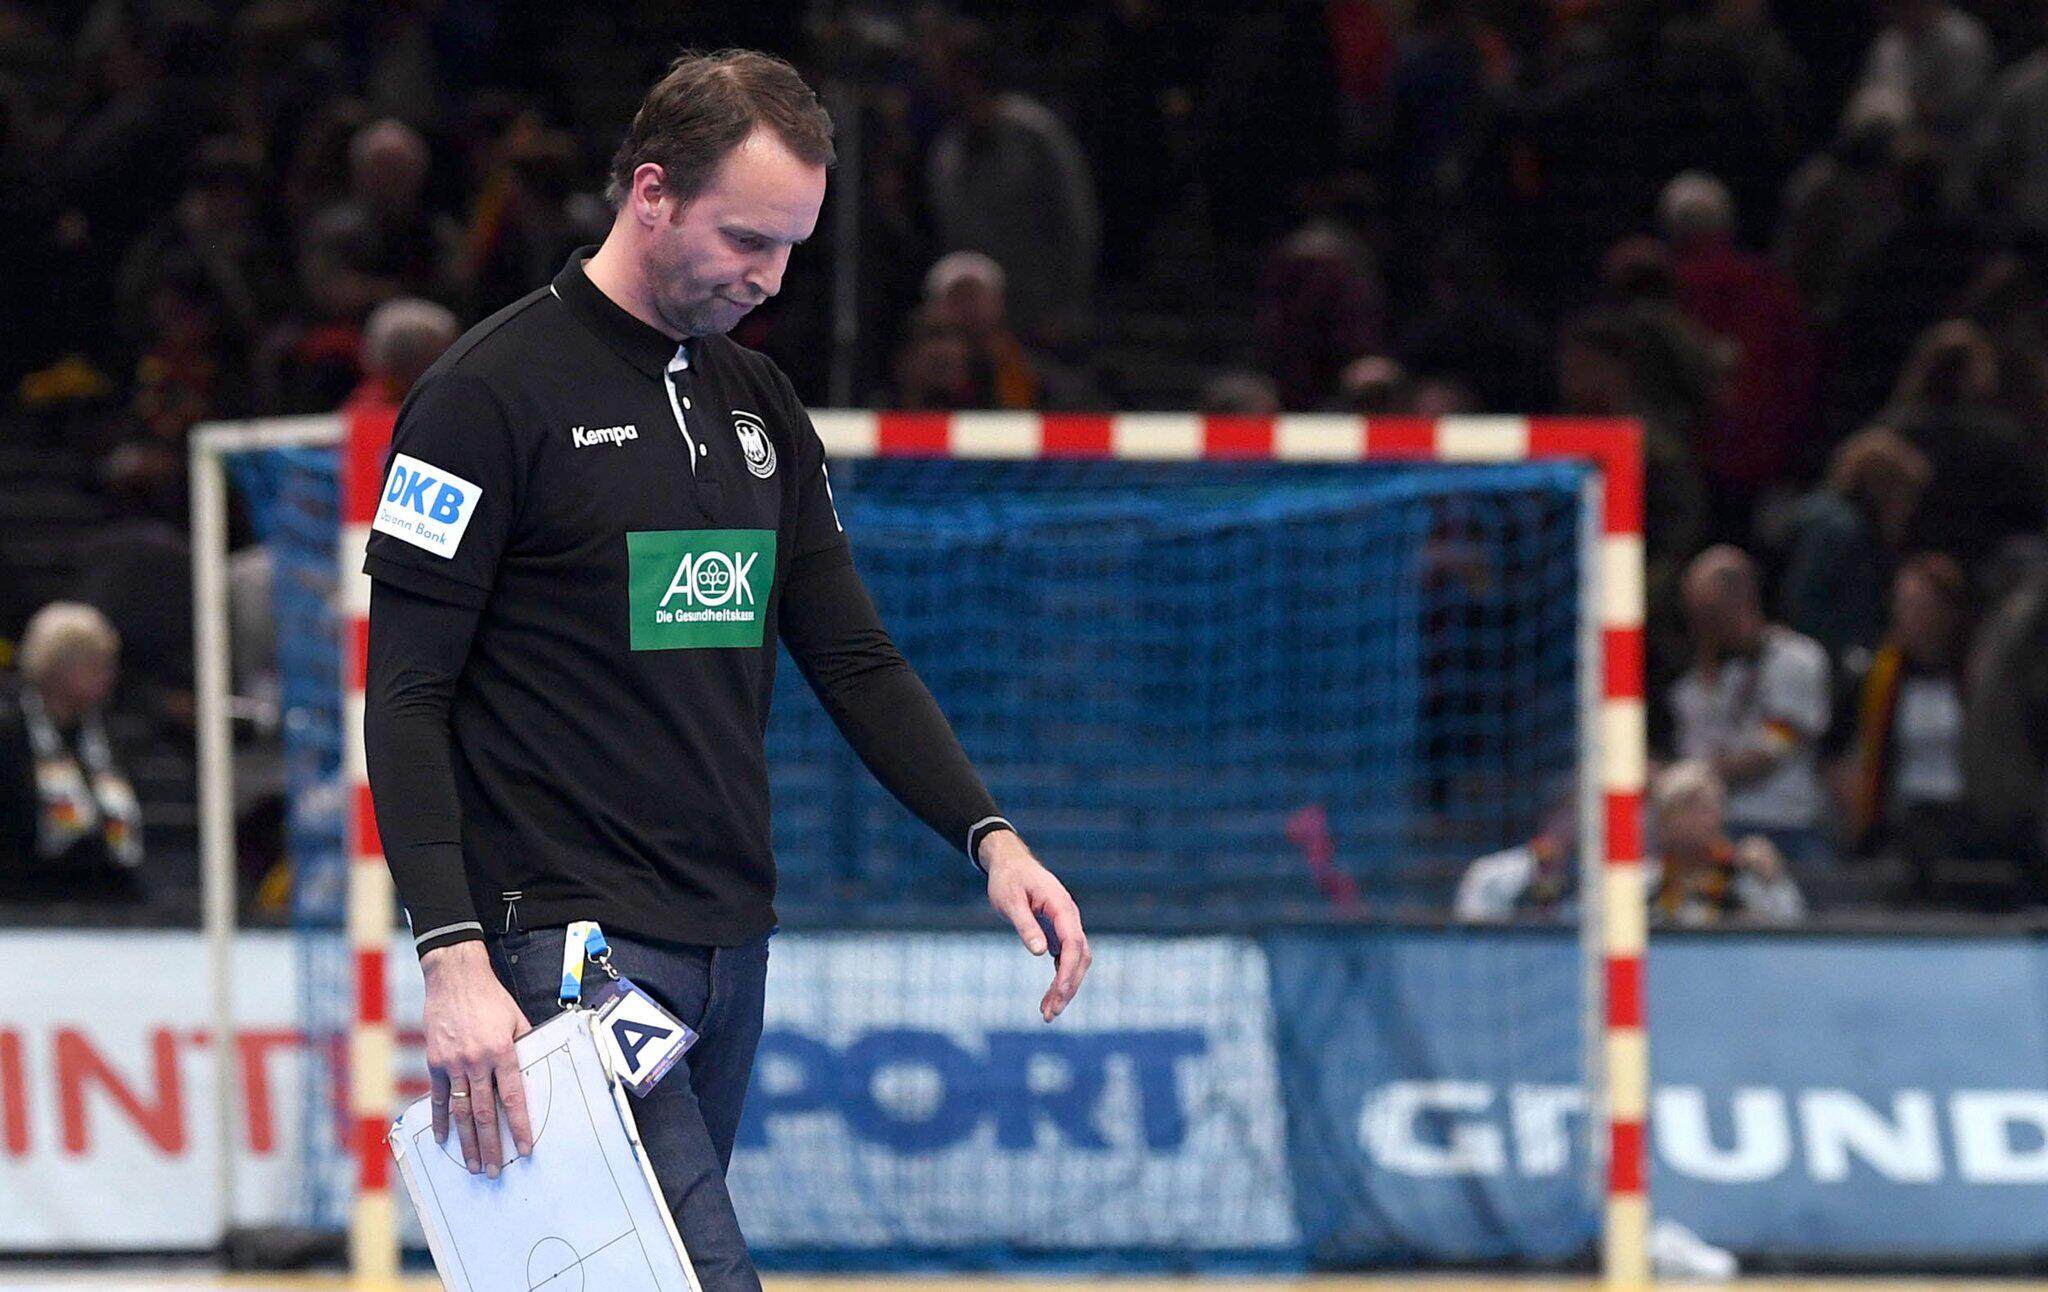 katar nationalmannschaft handball